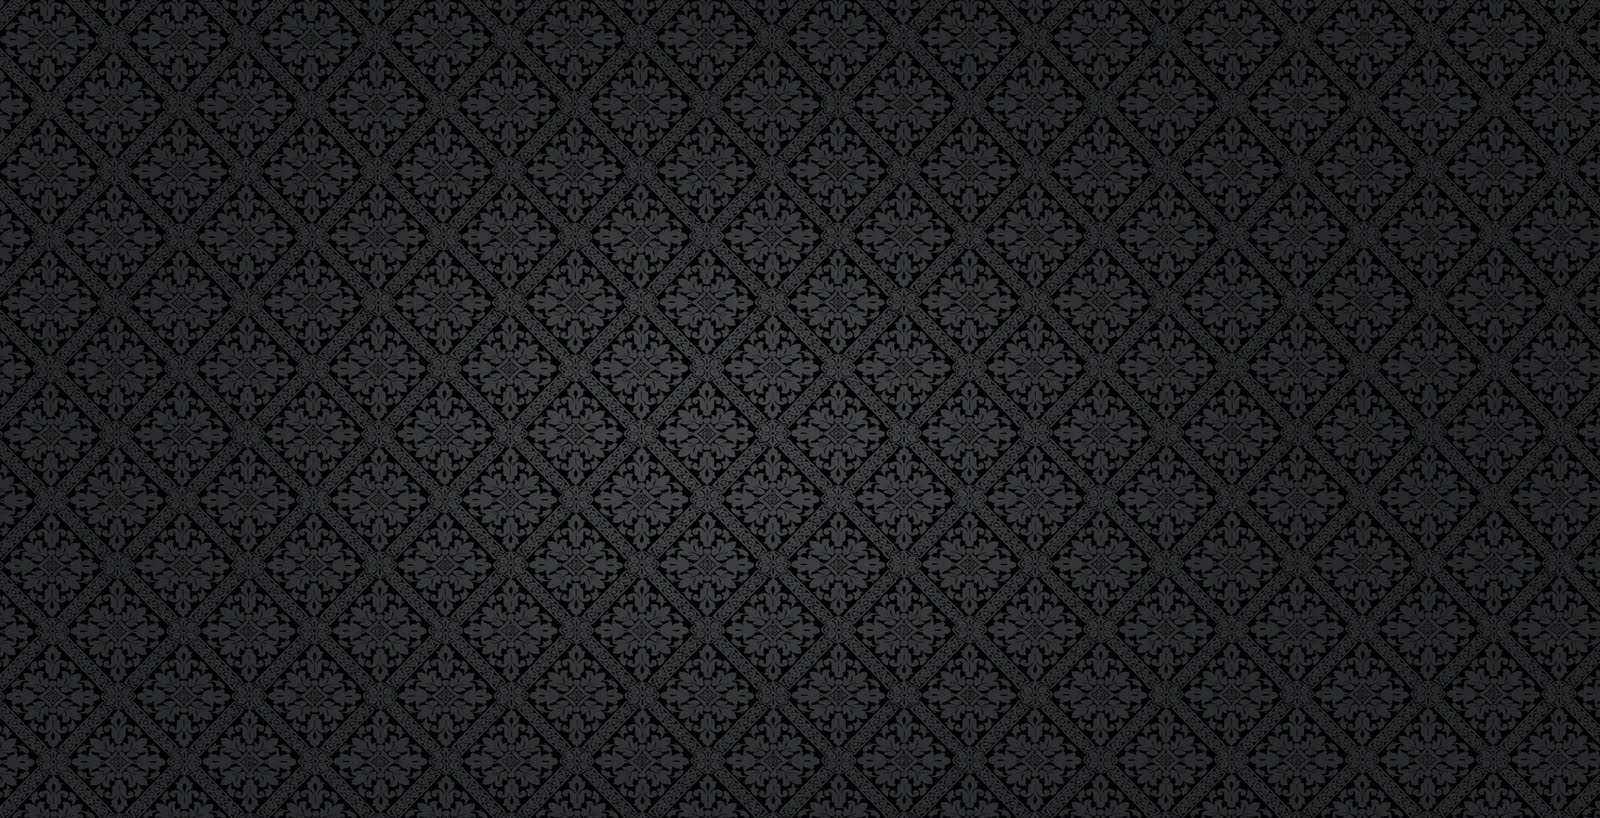 black texture wallpapers 3856 - photo #24